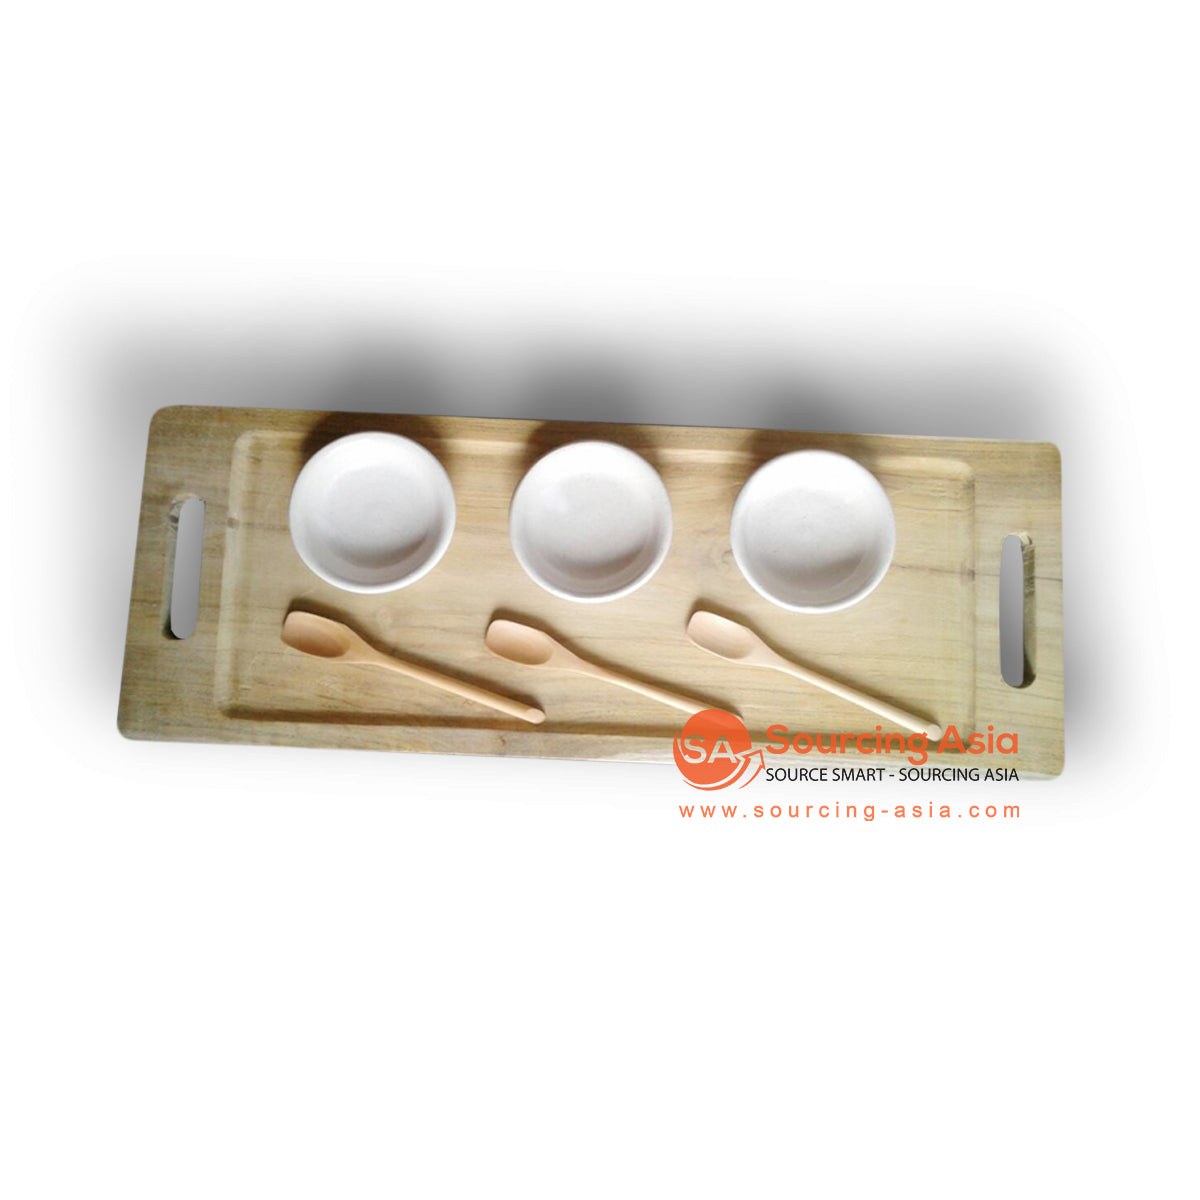 ABIAN001 SPA TRAY WITH BOWLS AND SPOONS